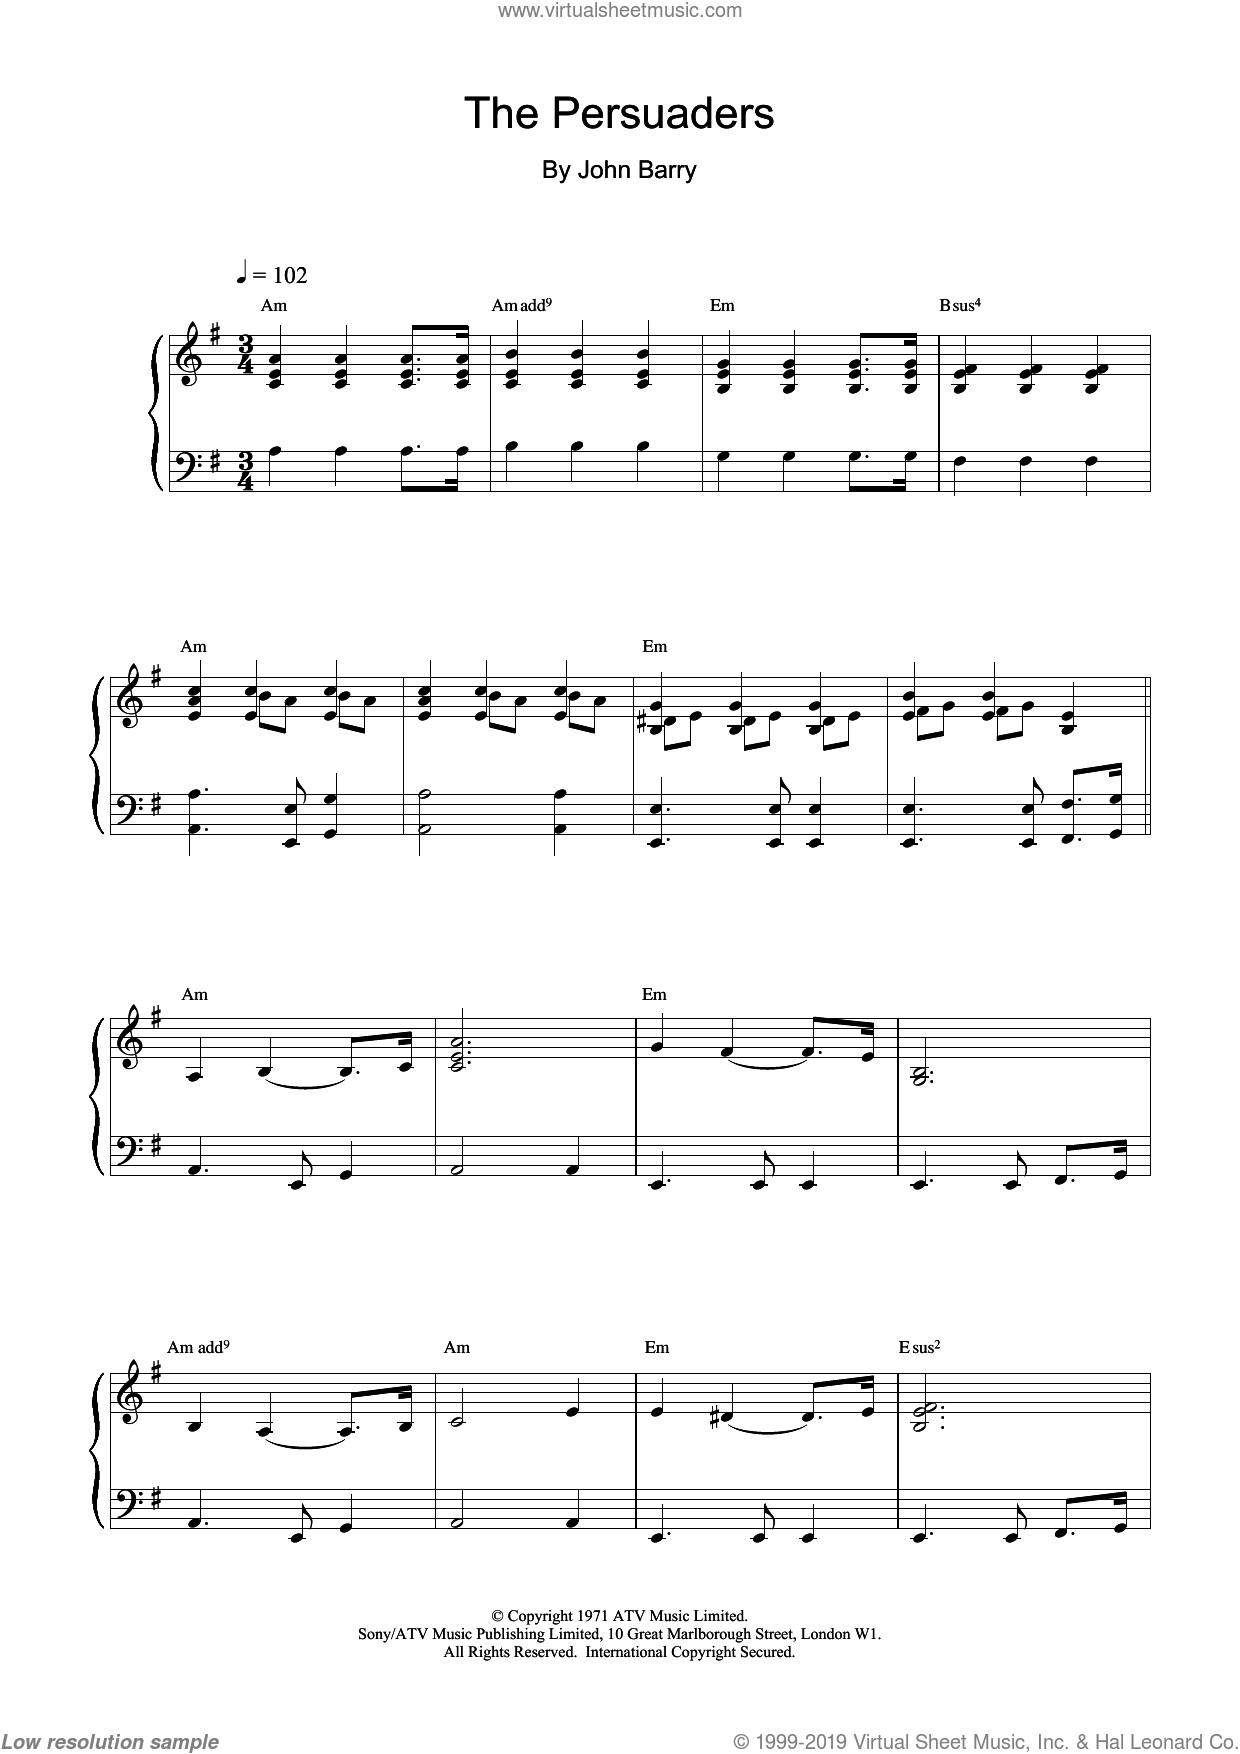 The Persuaders sheet music for piano solo by John Barry, intermediate skill level